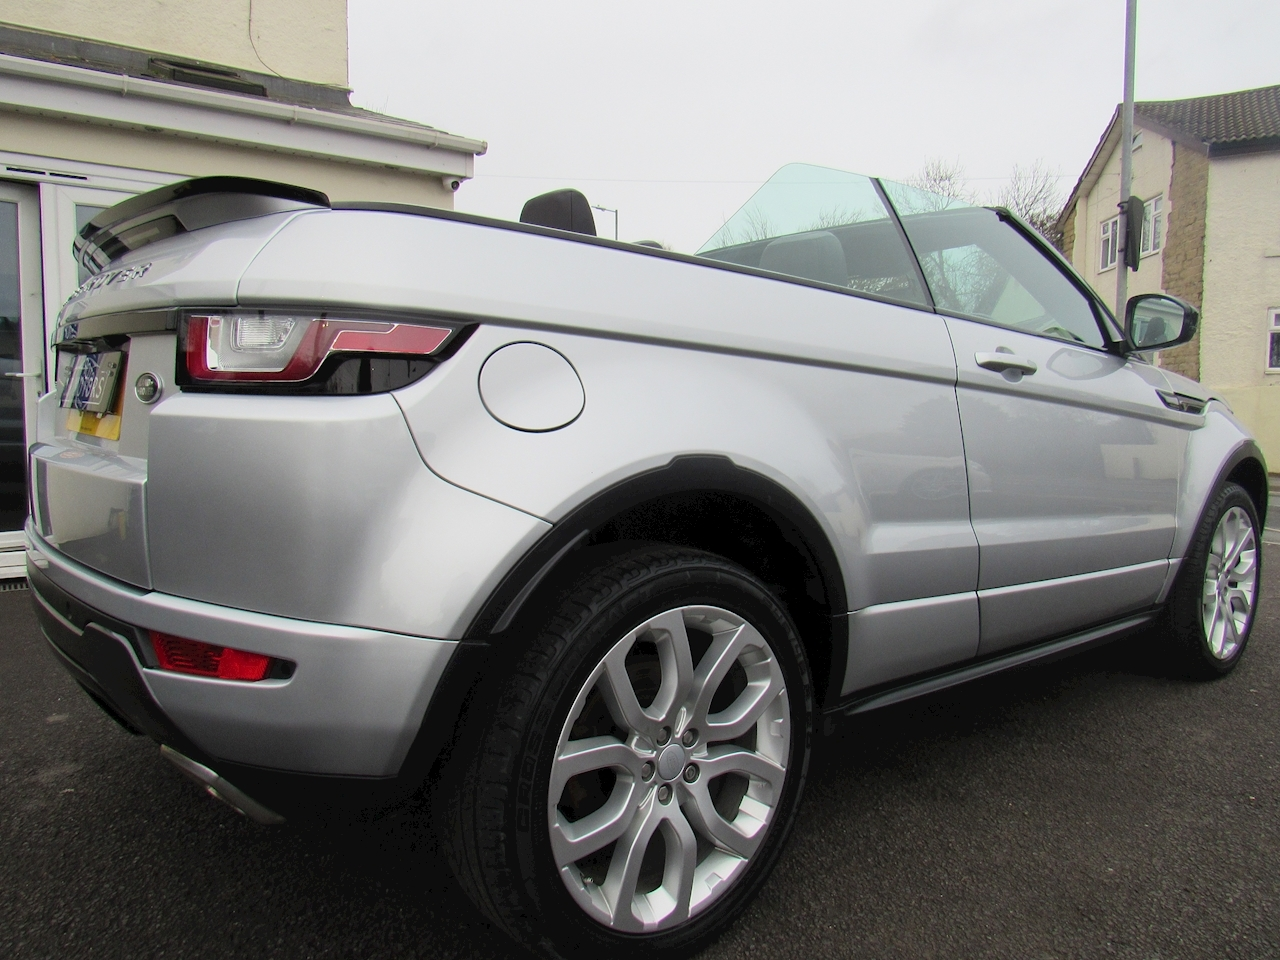 Land Rover 2.0 TD4 HSE Dynamic Convertible 2dr Diesel Auto 4WD (s/s) (180 ps)